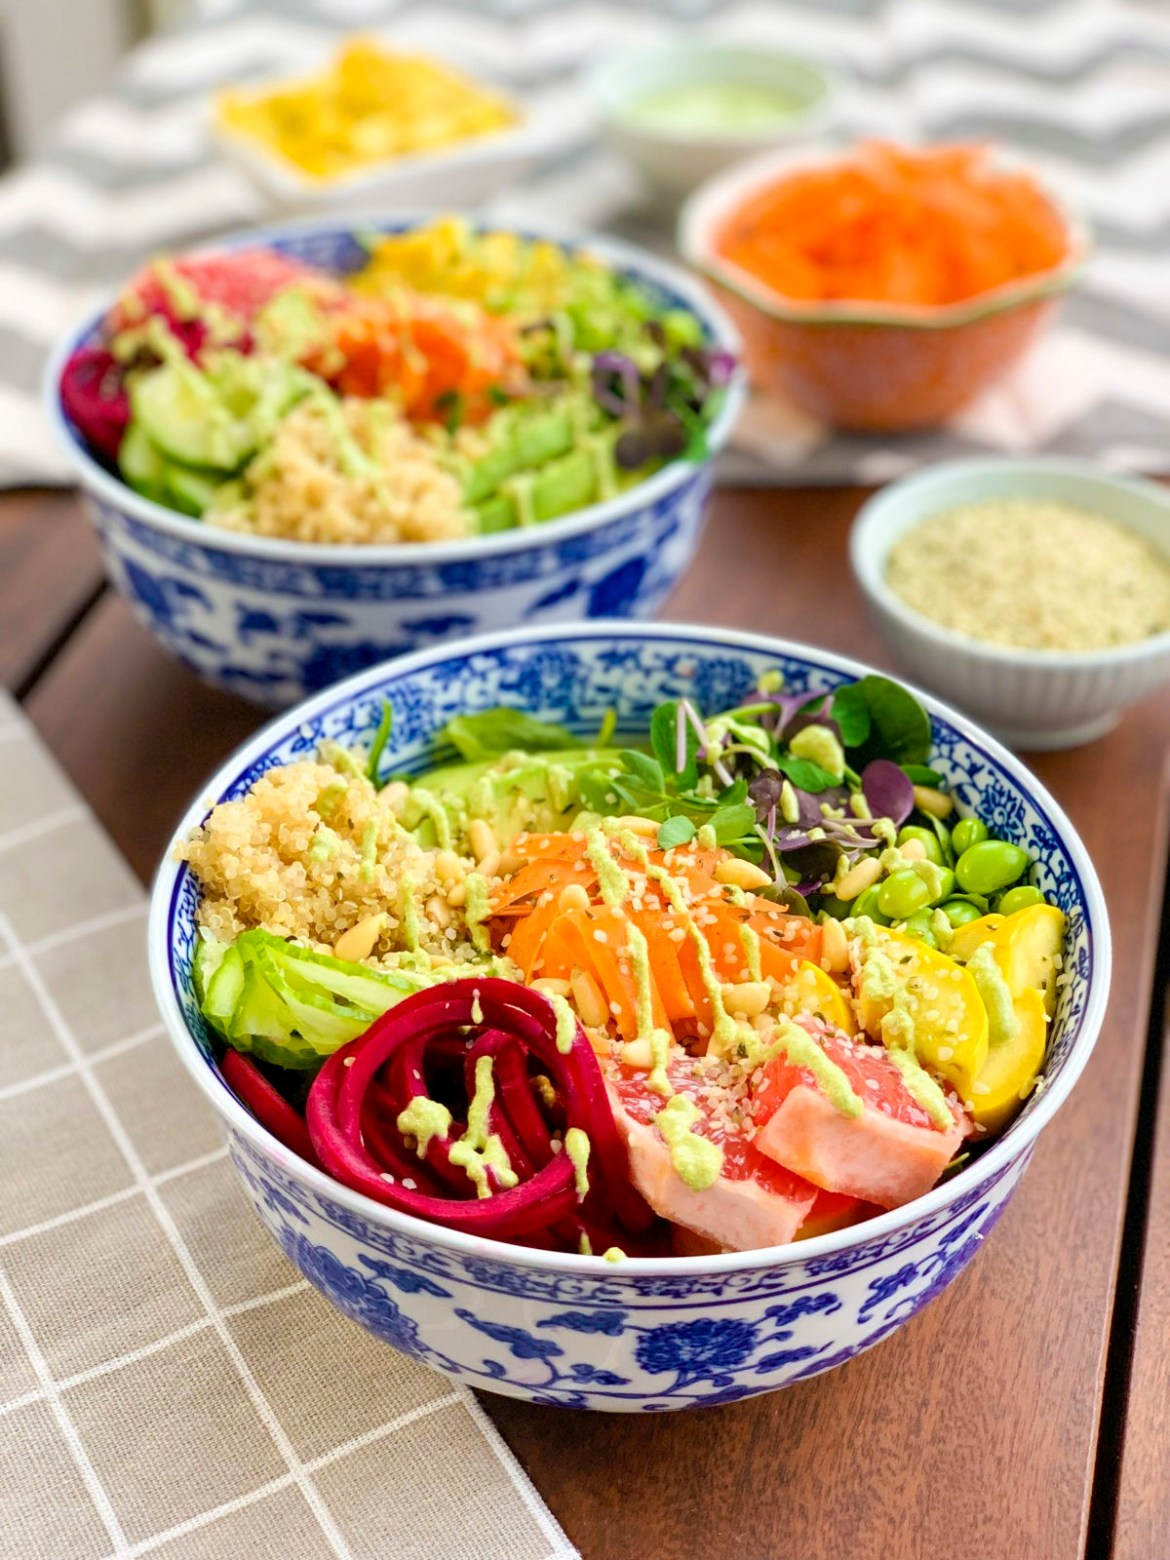 Be Healthy with a Vegan Buddha Bowl